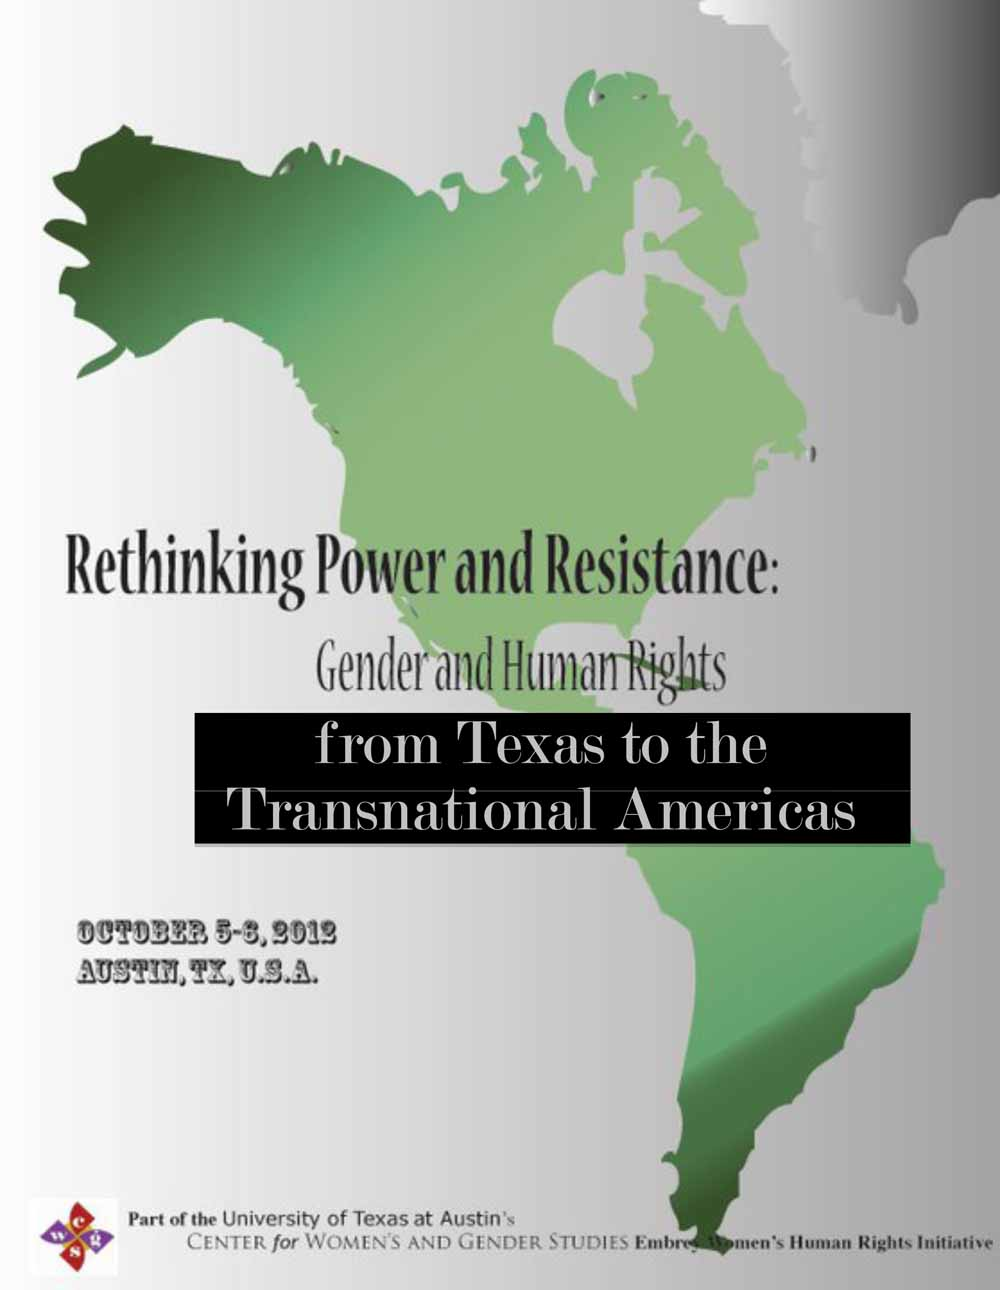 Convocatoria/Call for Proposals: Rethinking Power & Resistance: Gender & Human Rights from Texas to the Transnational Americas